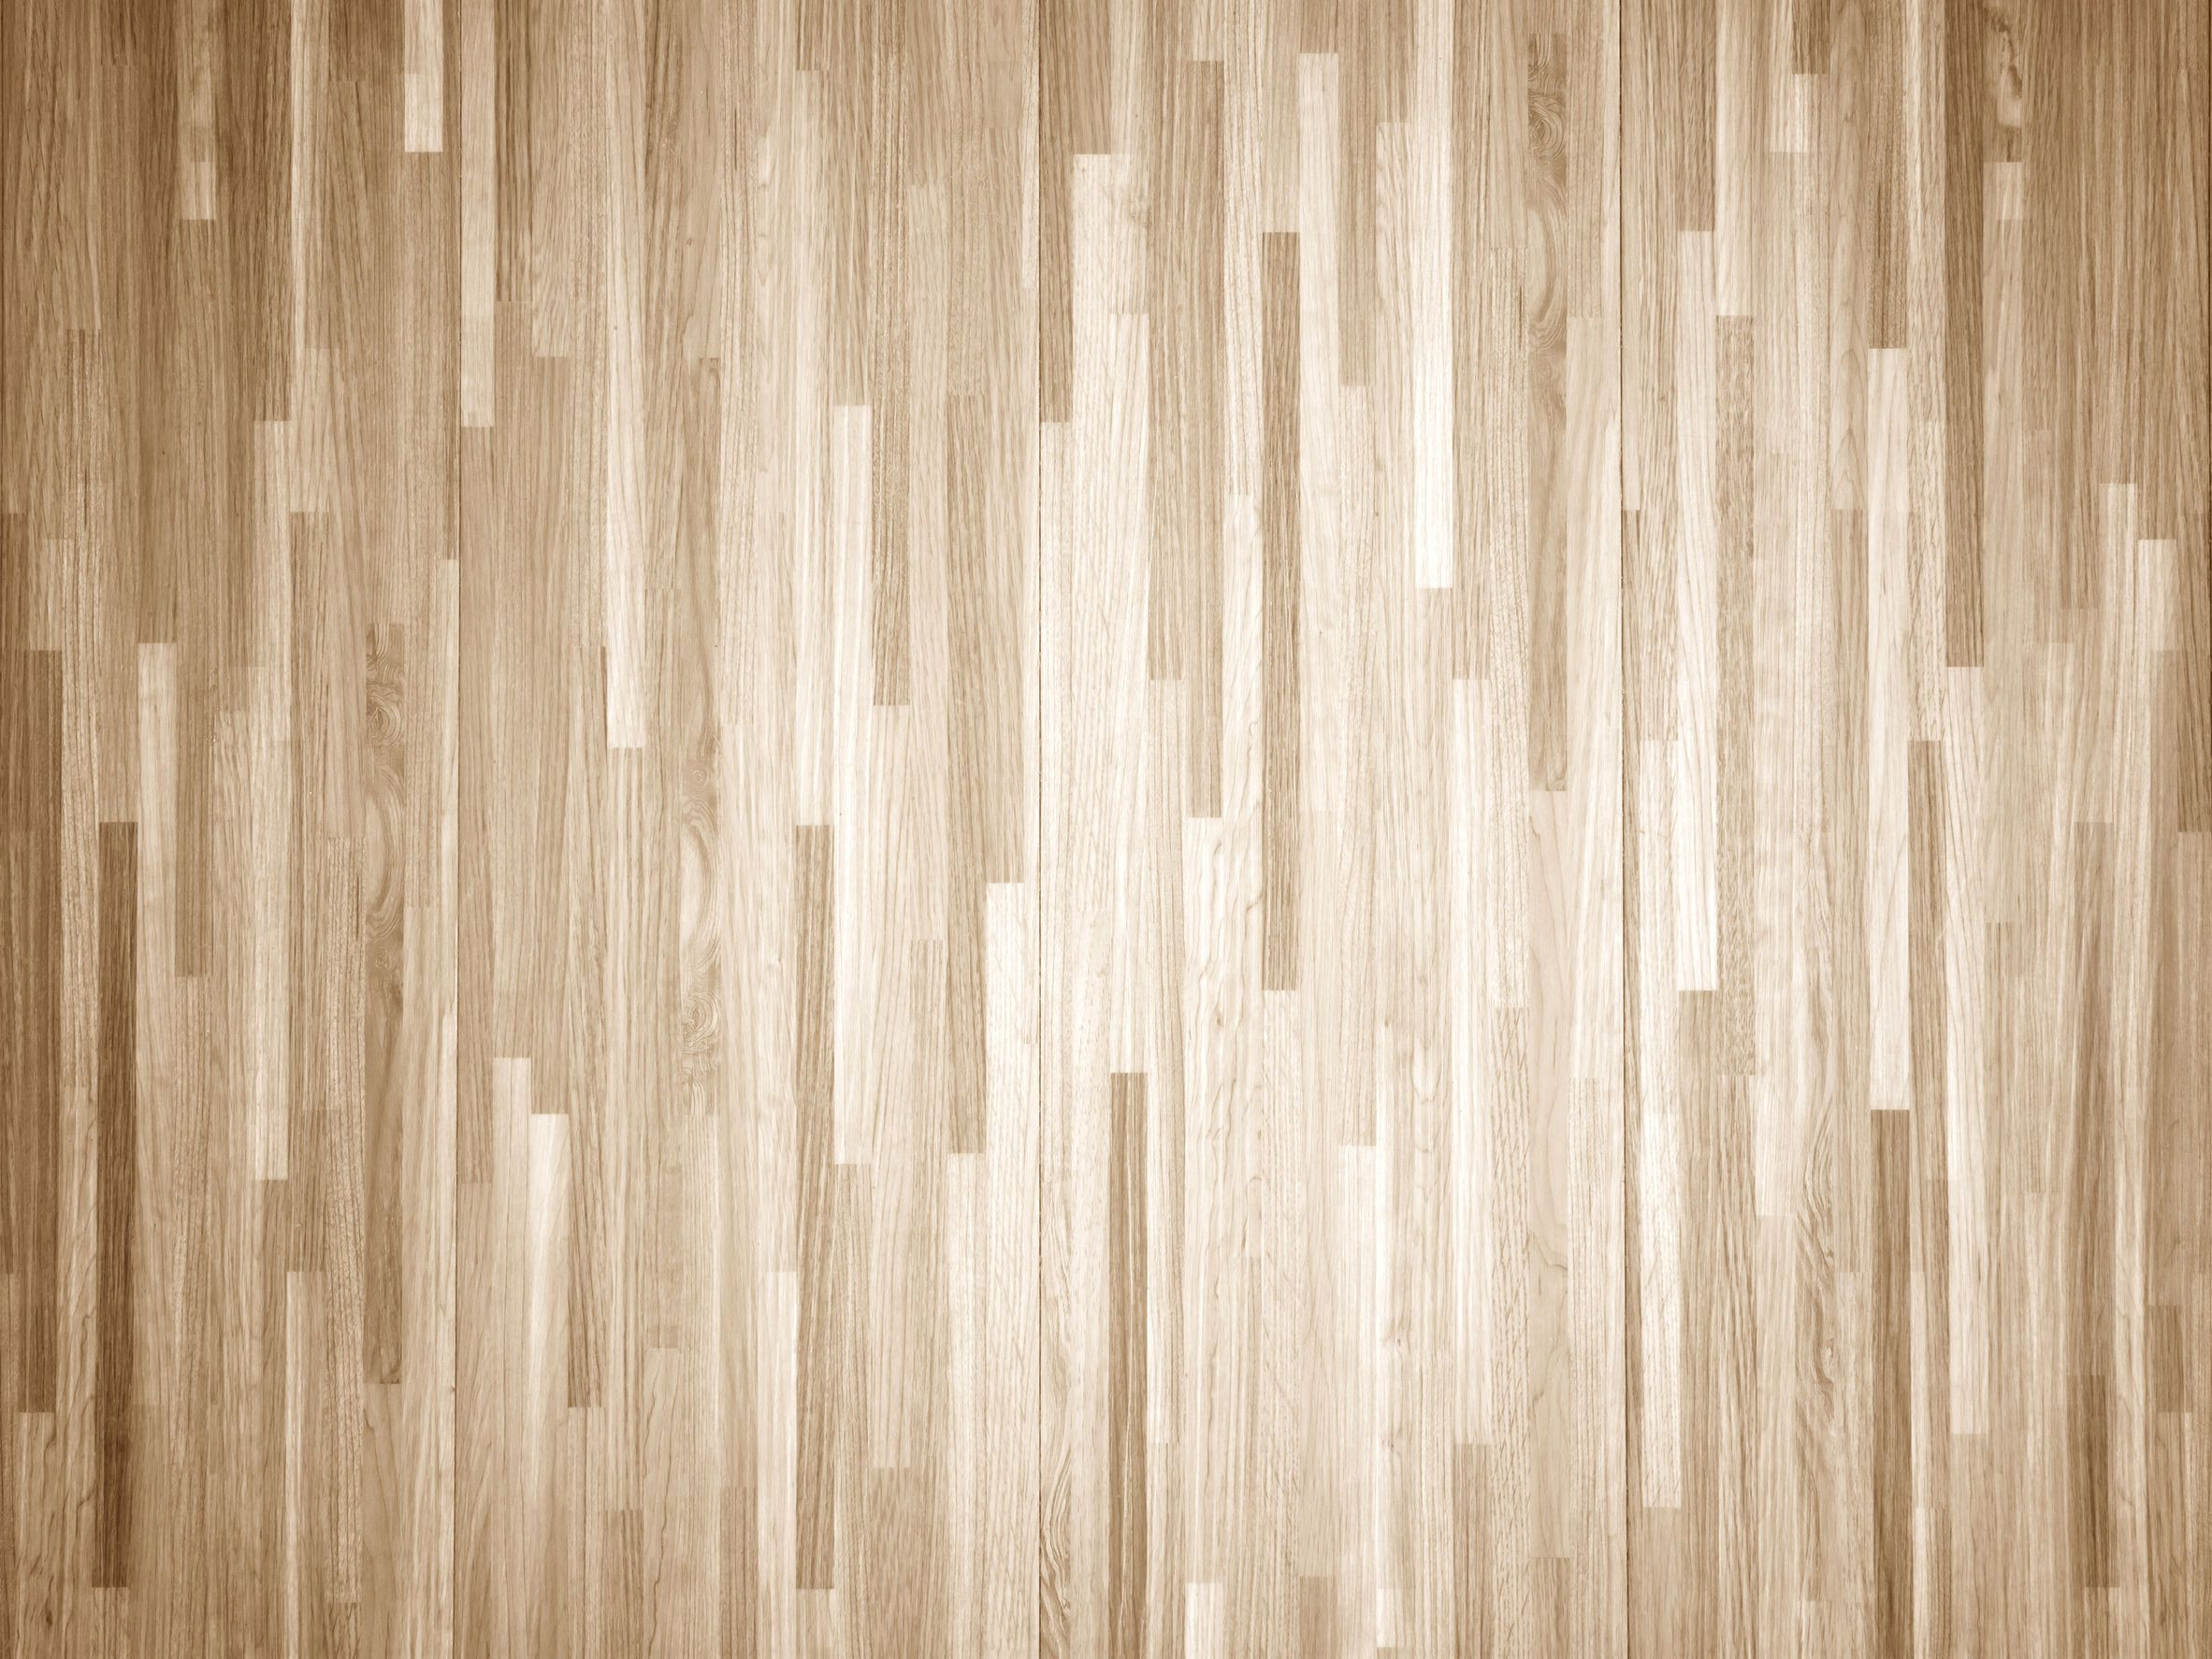 hardwood flooring per sq ft installed of how to chemically strip wood floors woodfloordoctor com pertaining to you